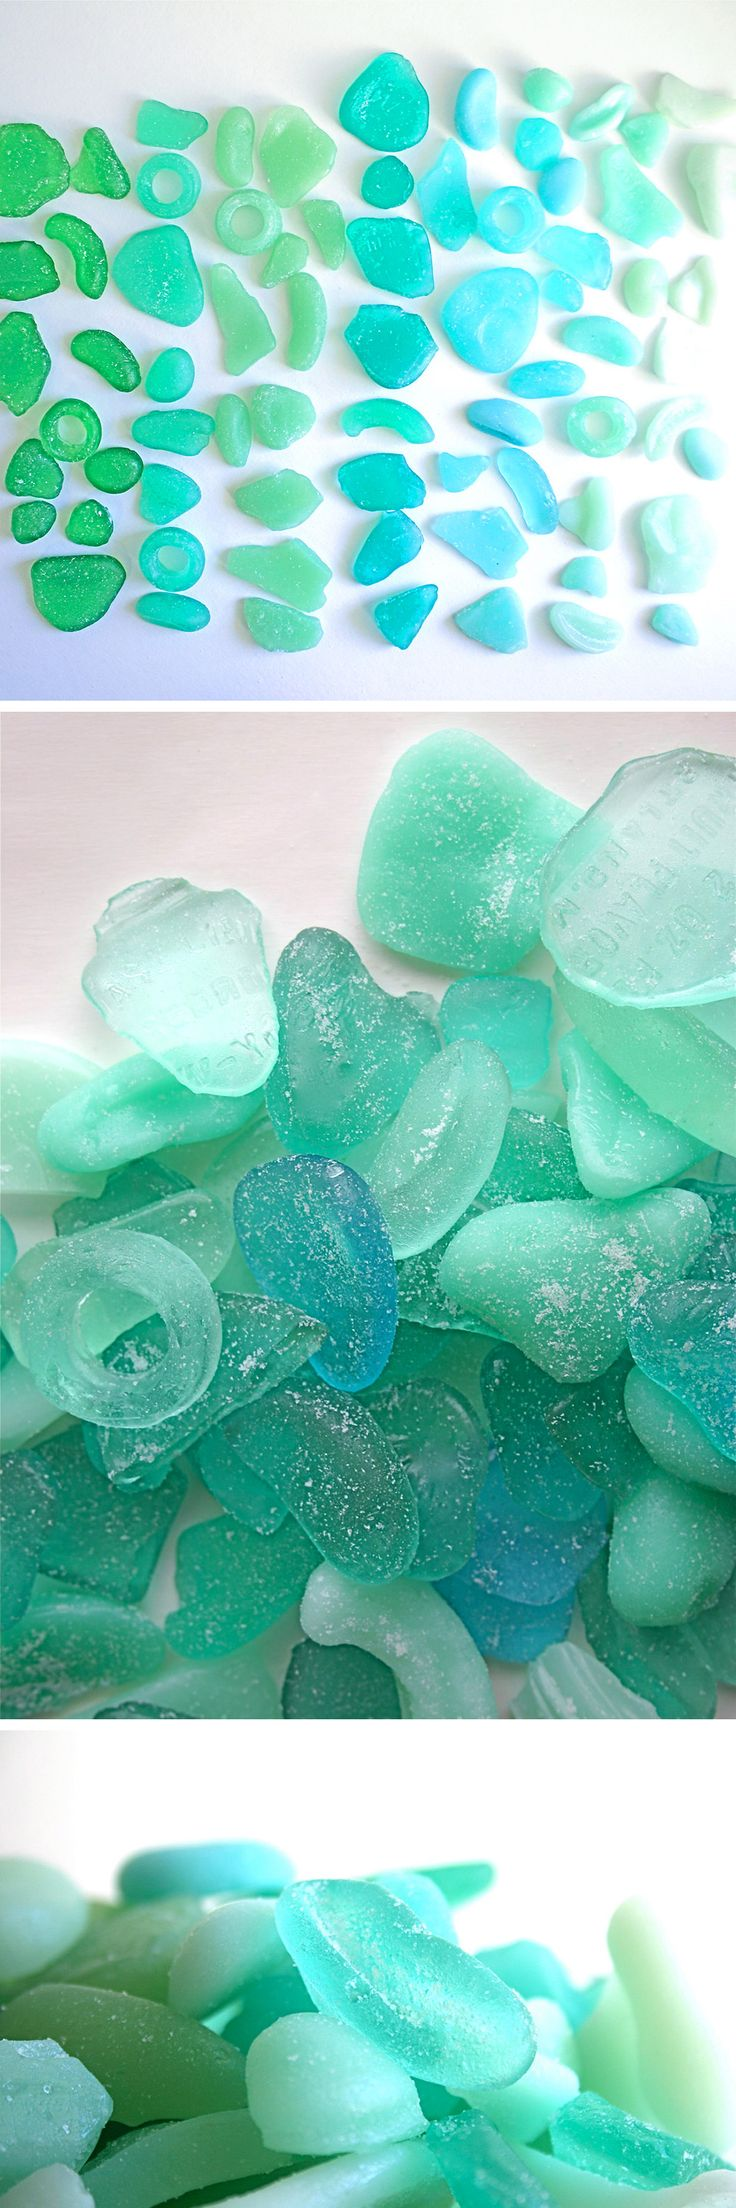 Beach wedding looks  Wedding Cakes Edible Sea Glass Candy Looks Just Like It Washed up on